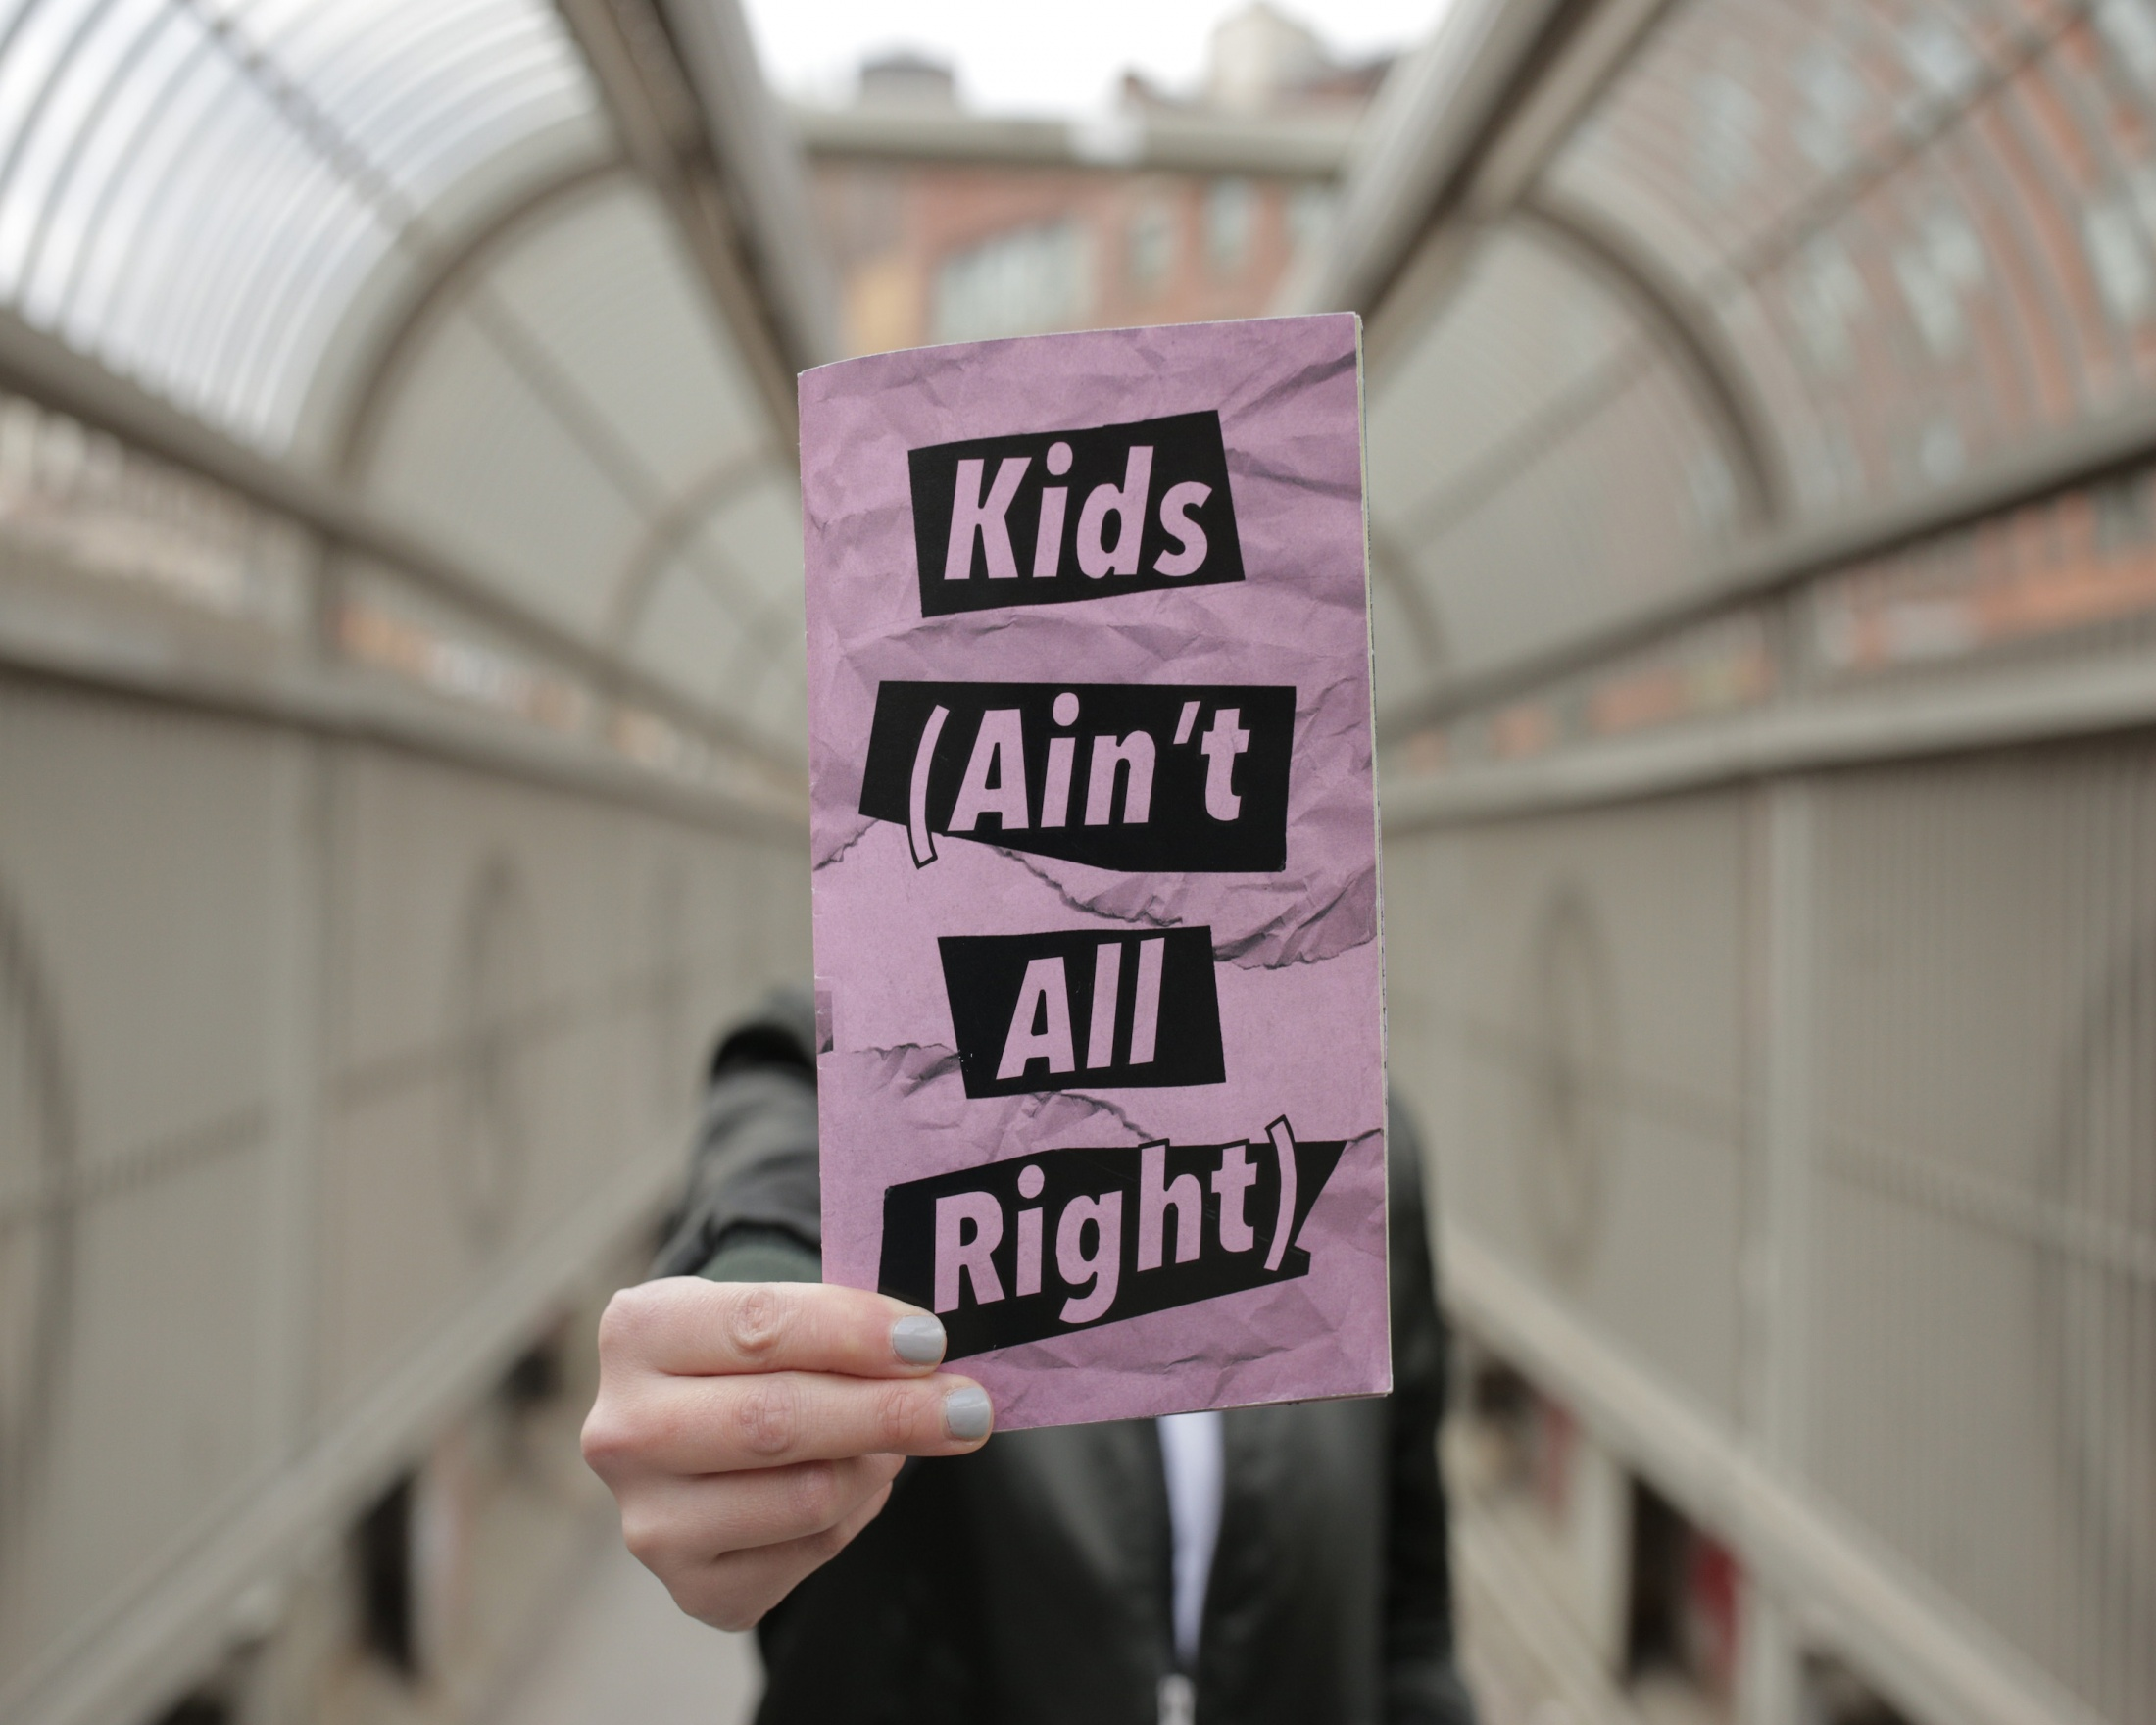 Thumbnail for Kids (Ain't All Right)